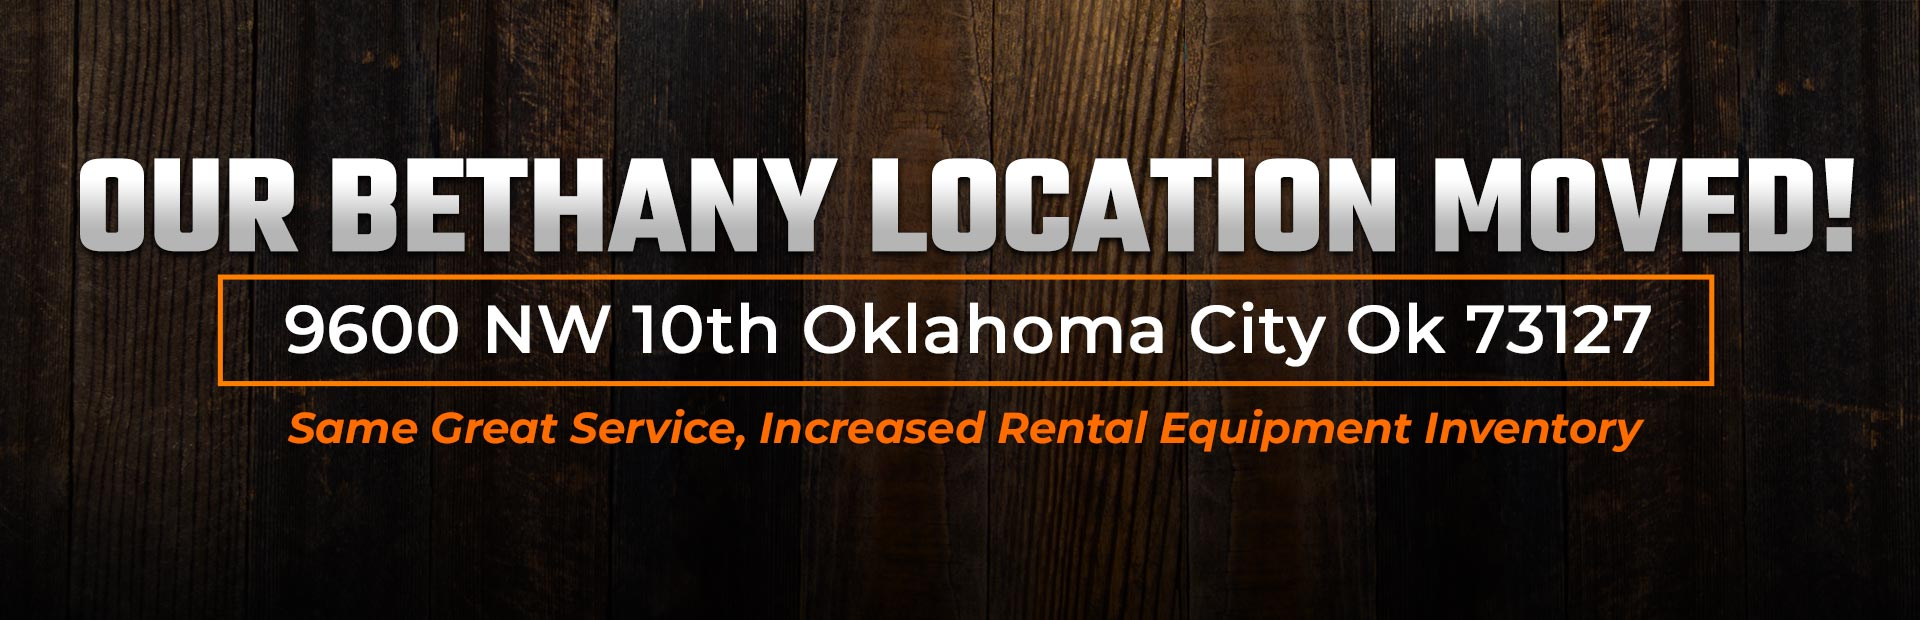 Our Bethany location moved! Click here to learn more!